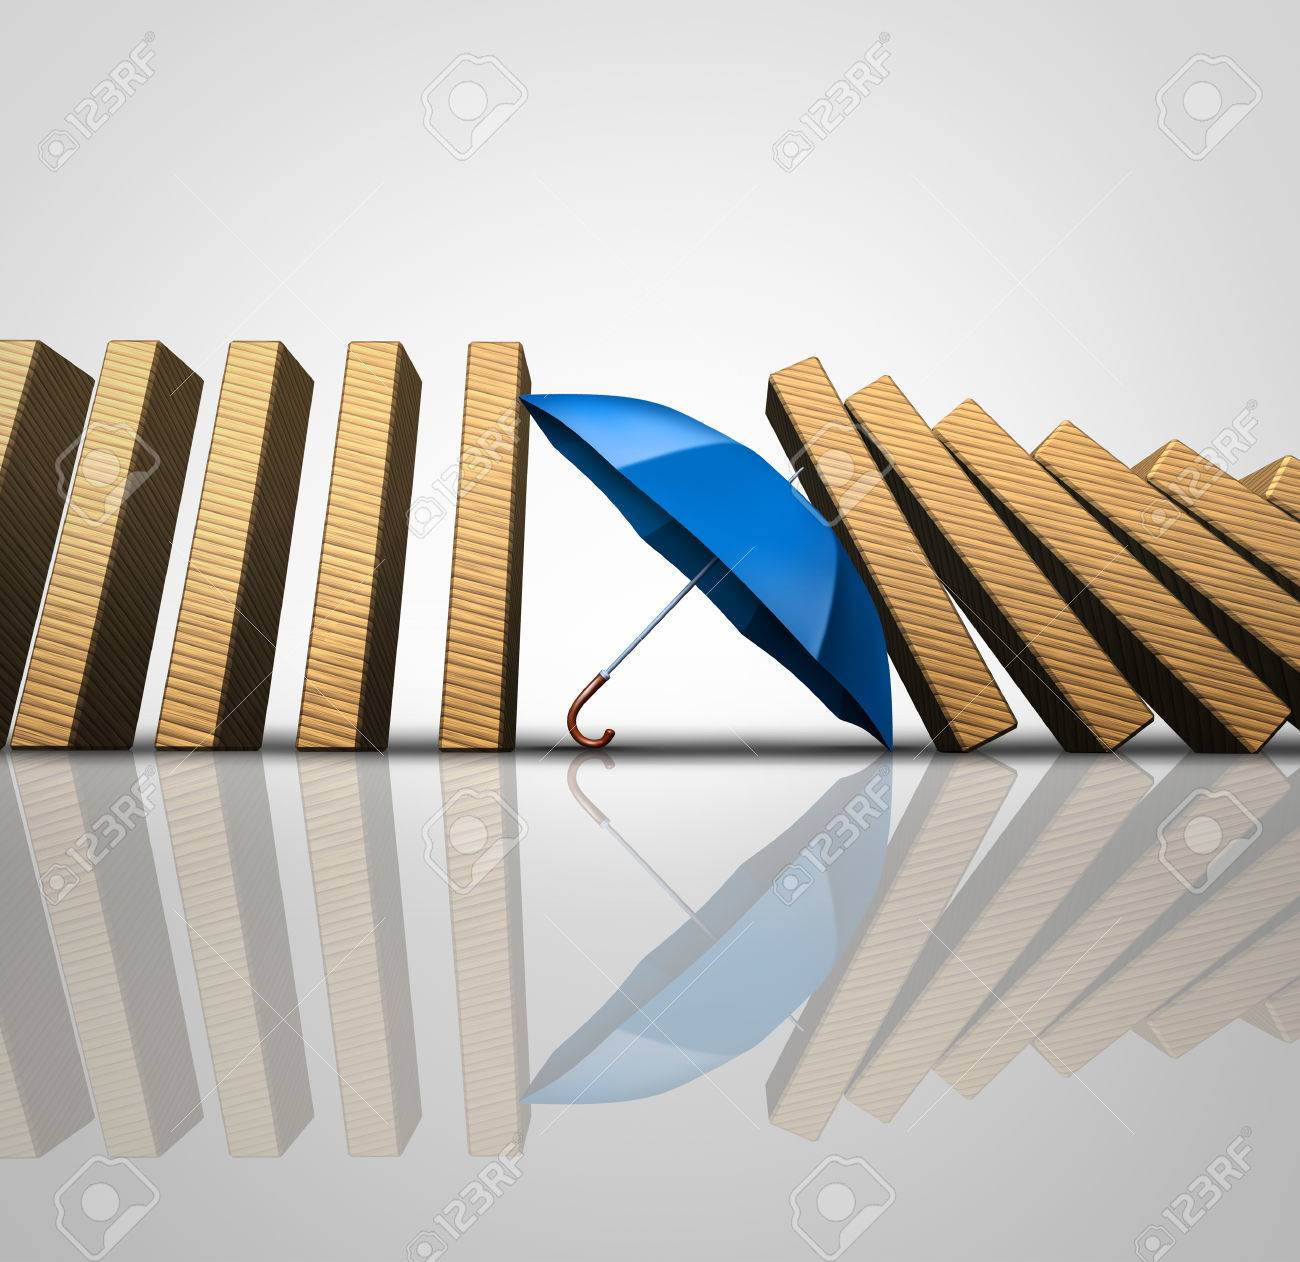 Protect losses concept and shielding incoming disaster as an umbrella stopping the domino effect or falling dominos as a business guarantee metaphor as a 3D illustration. - 62682387